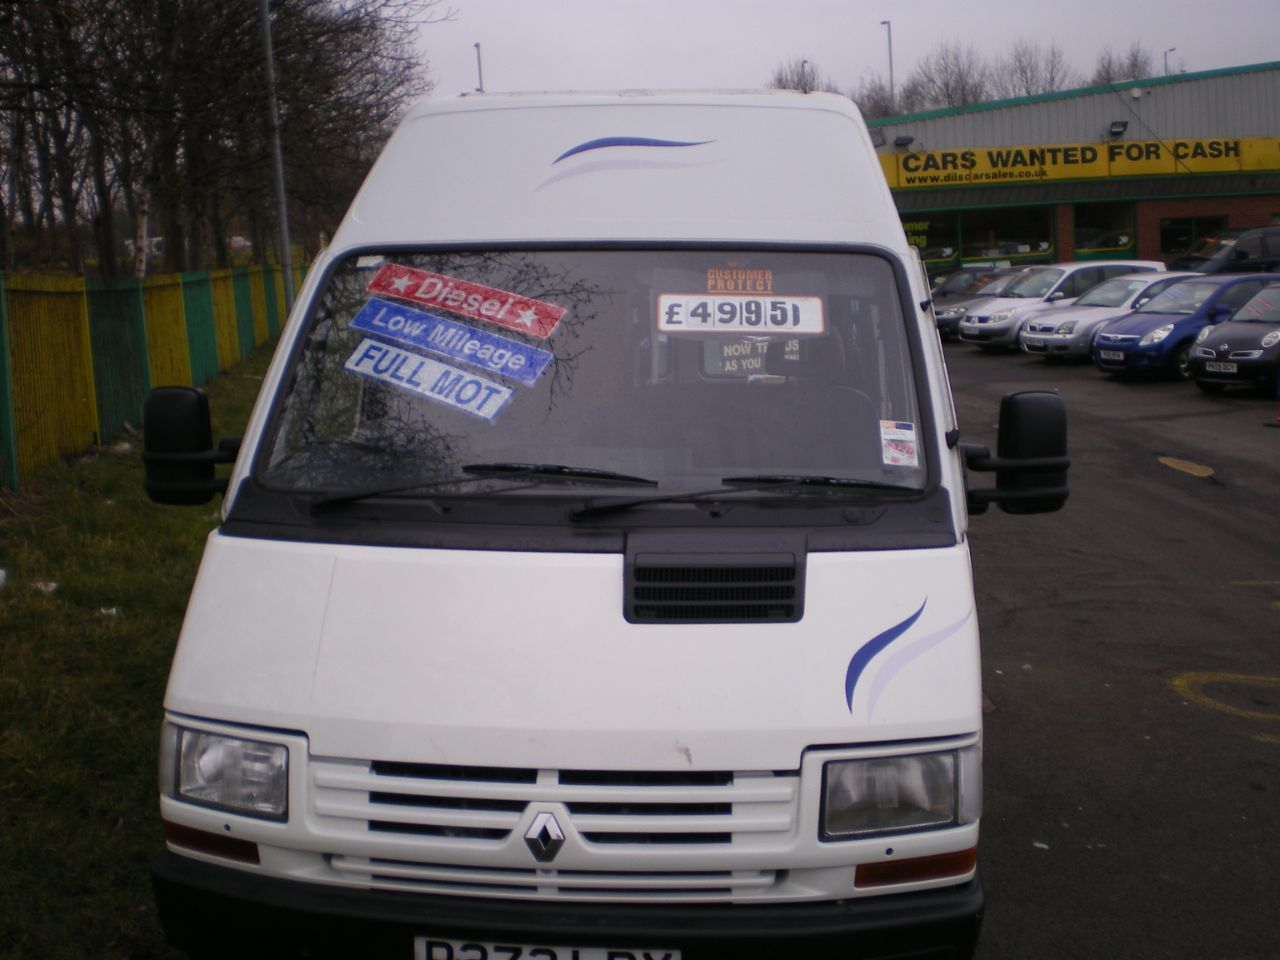 Renault Trafic 2.1 TRAFIC T1100D LWB Motorhome Diesel White at Dils Car Sales South Shields